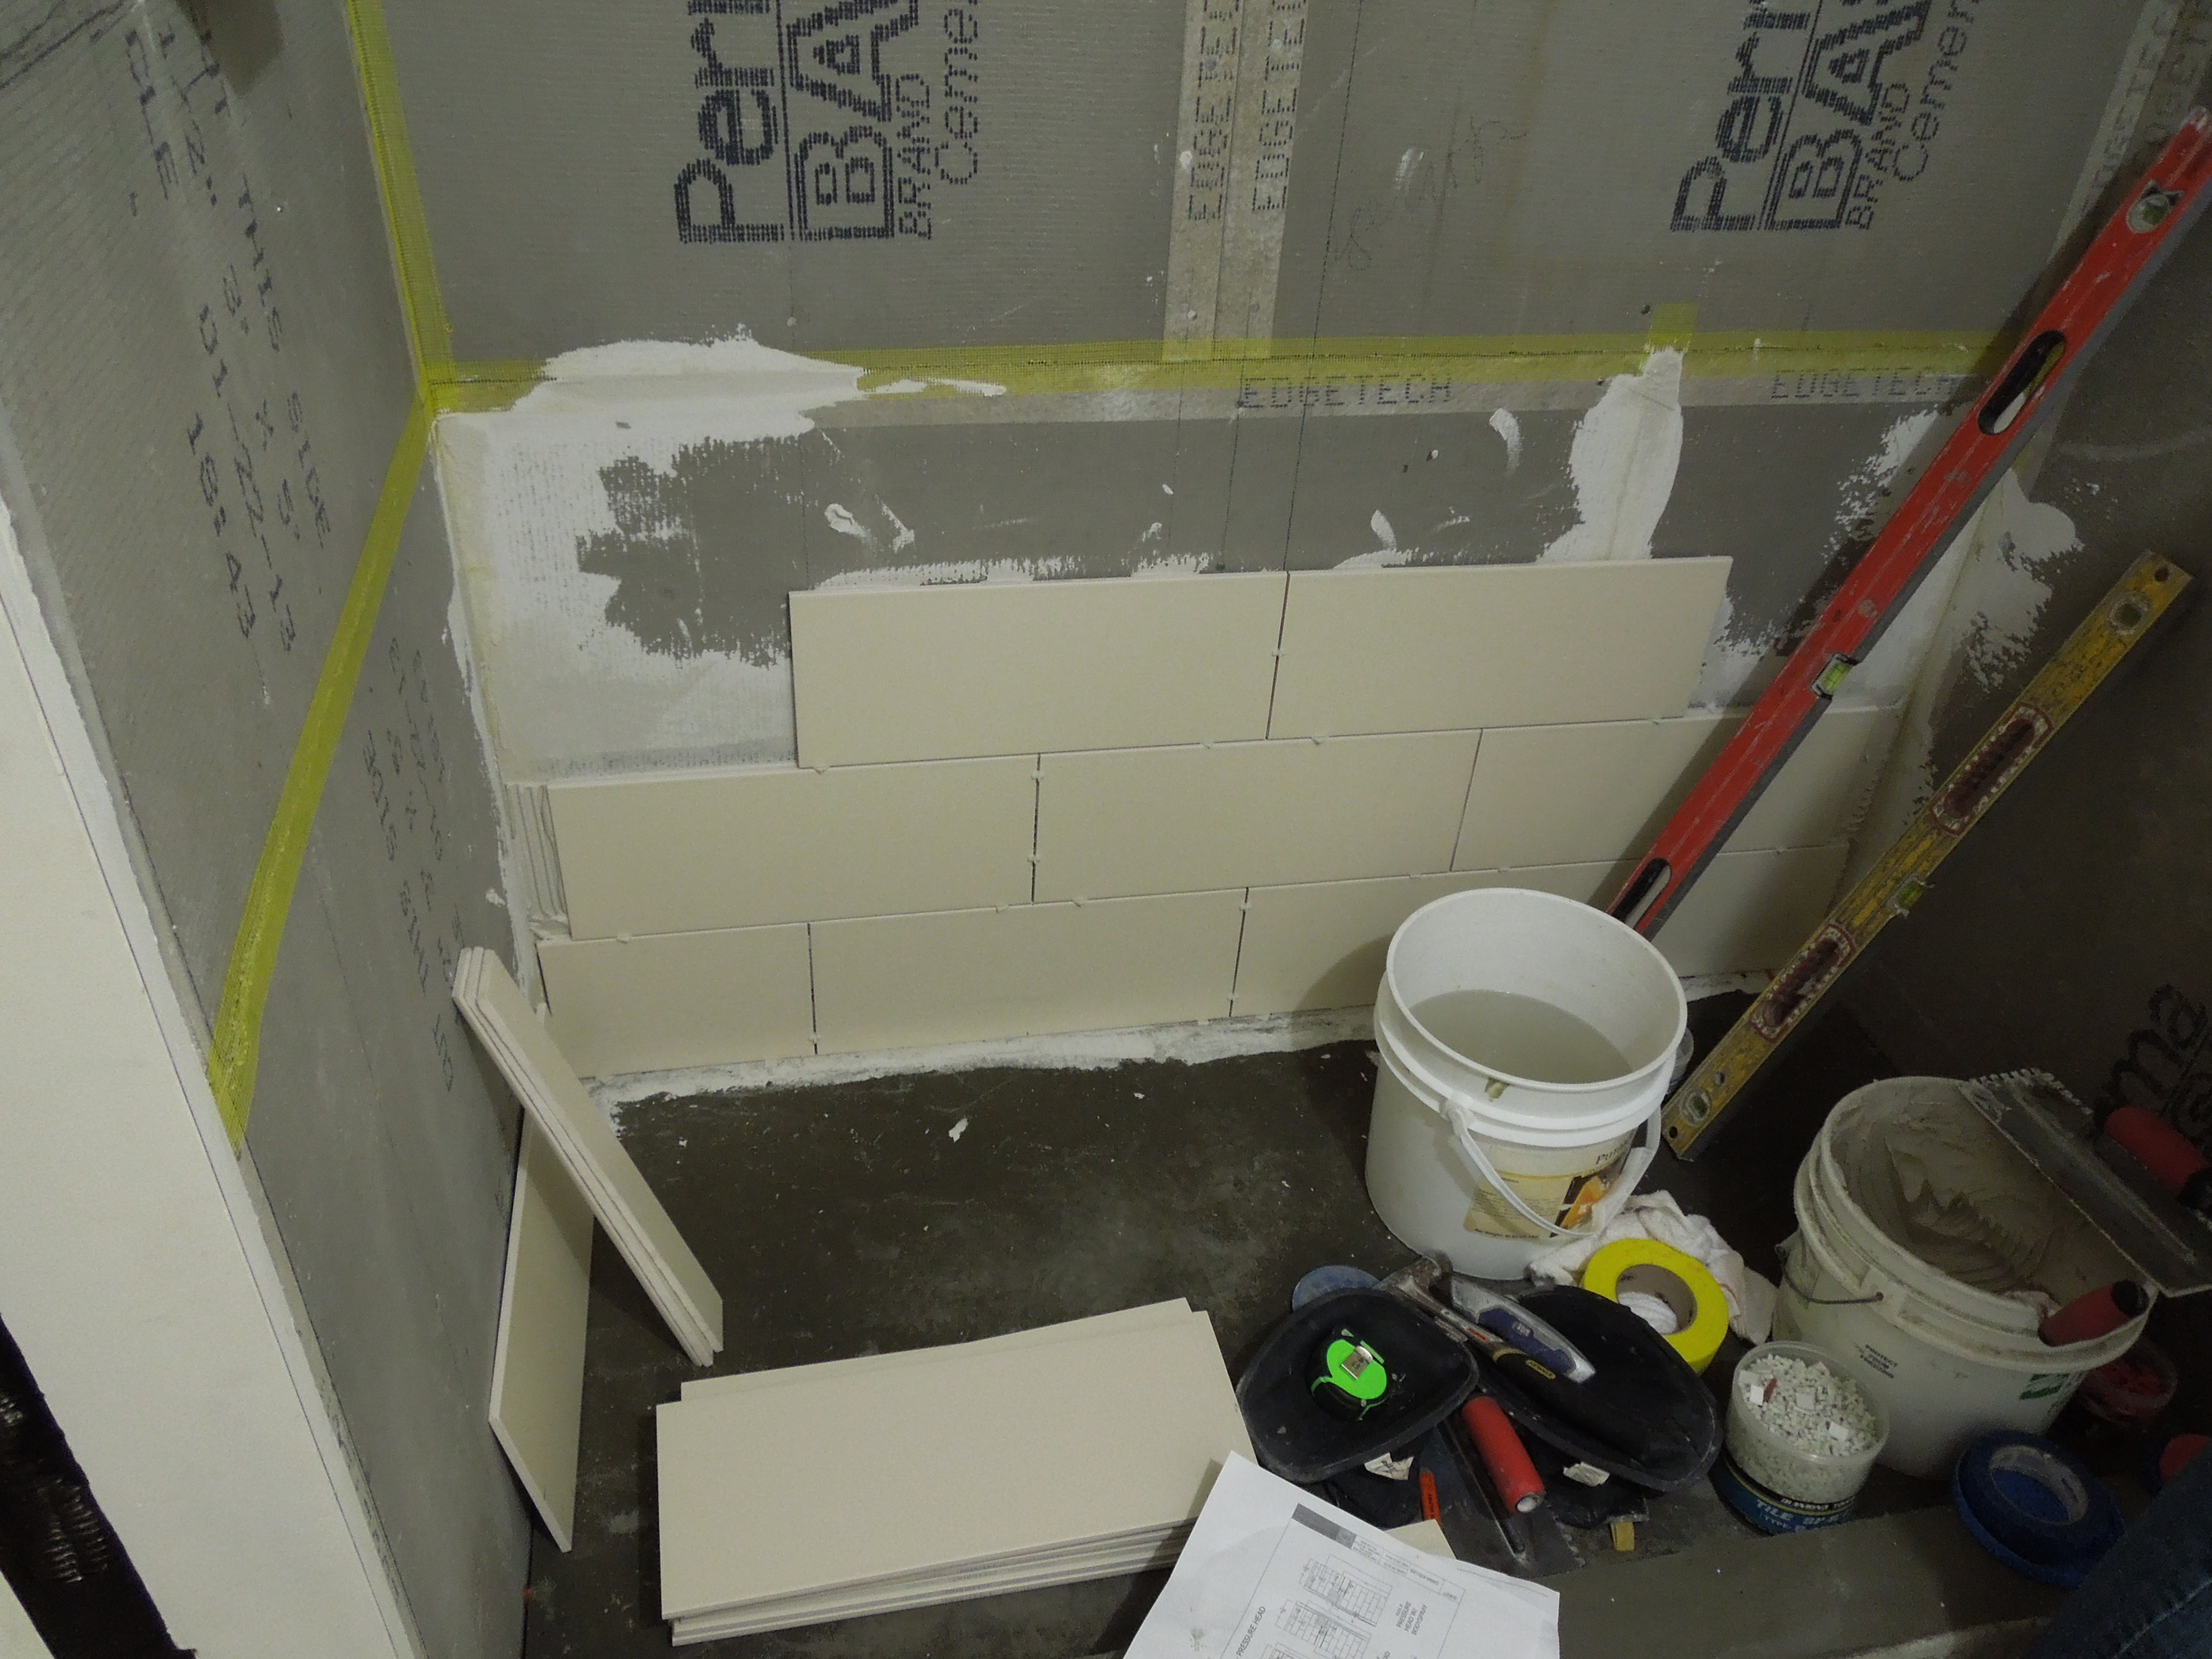 tile layouts for bathroom showers, shower tiles, setting tile in a shower